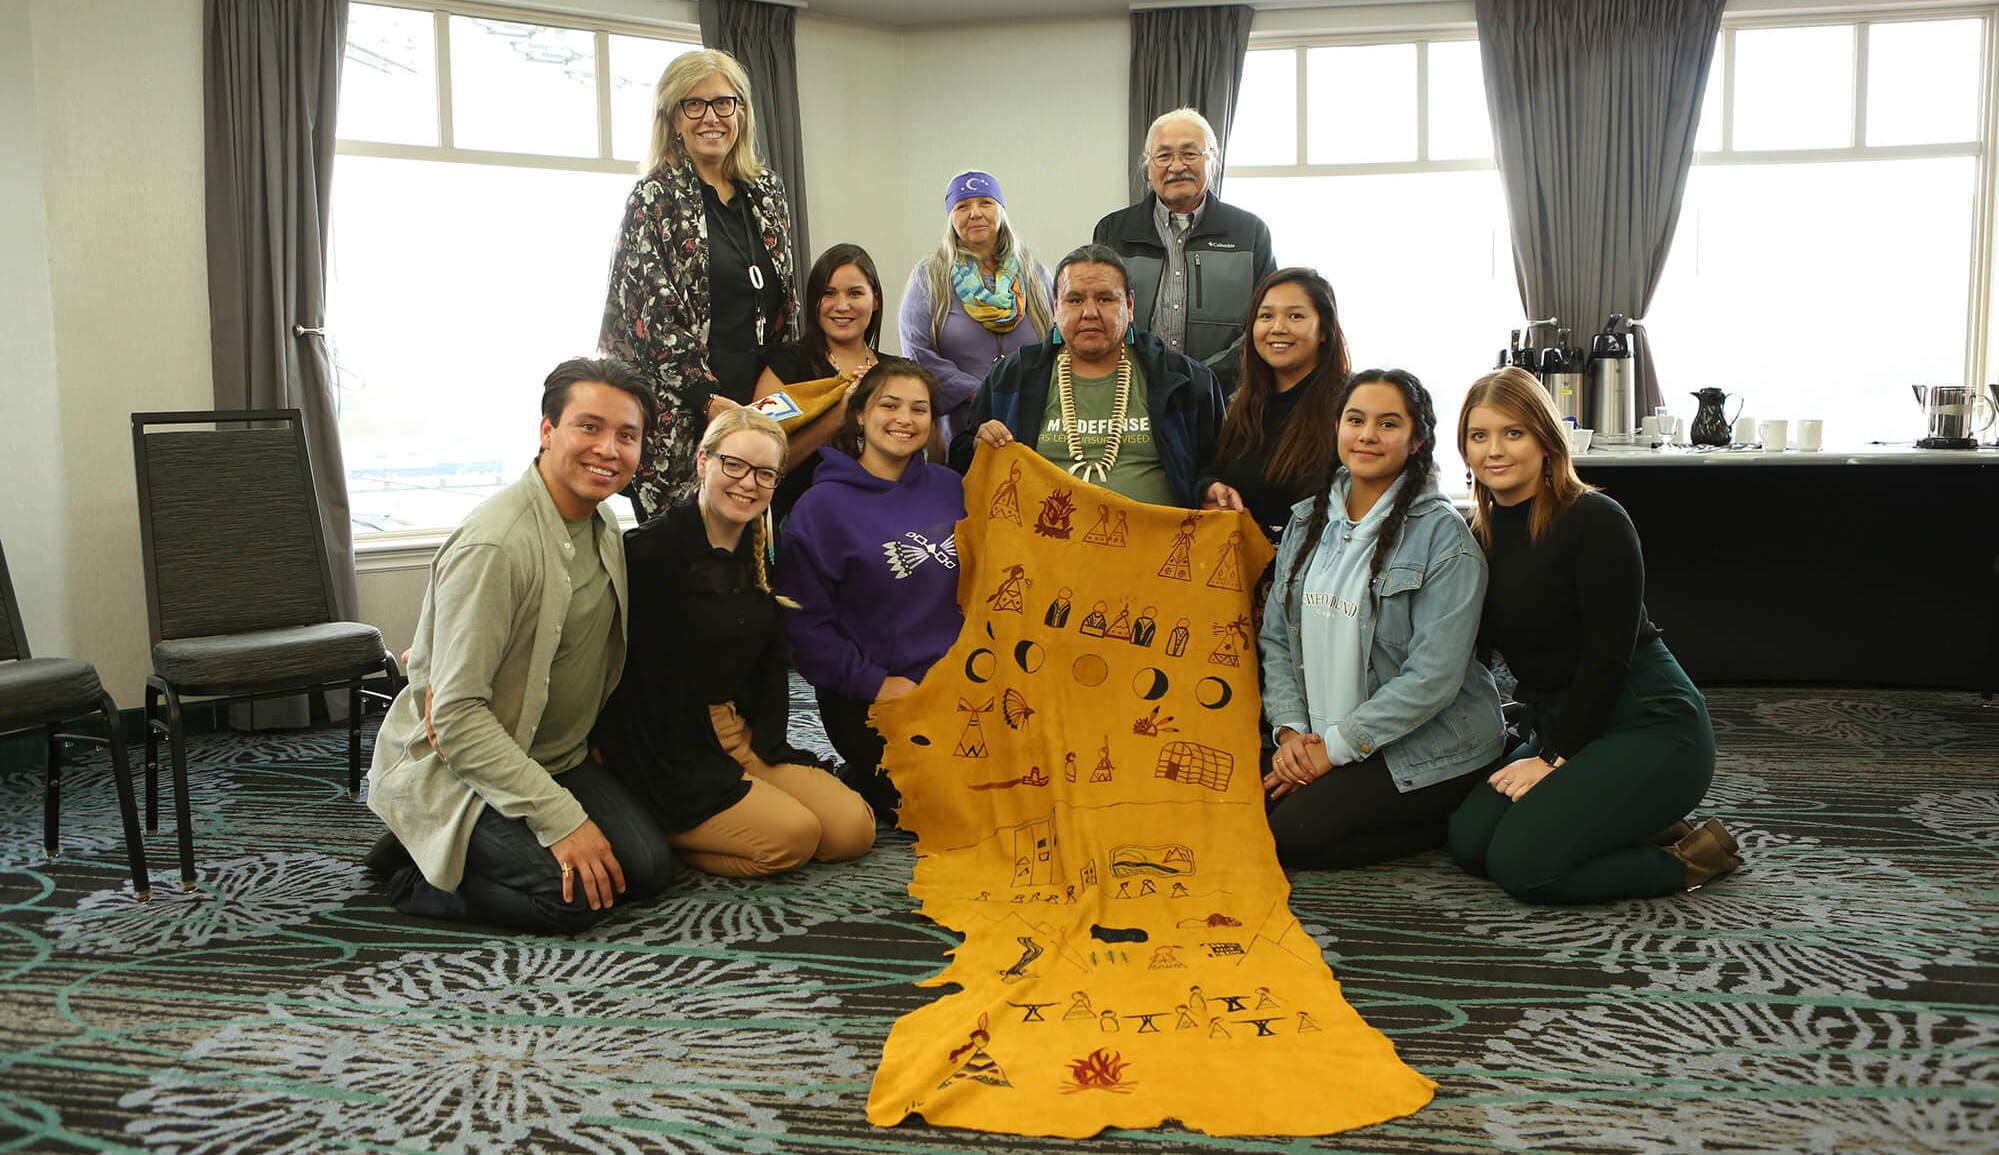 Members of our Indigenous Youth Advisory Council show a moose hide in St. John's, Newfoundland and Labrador.